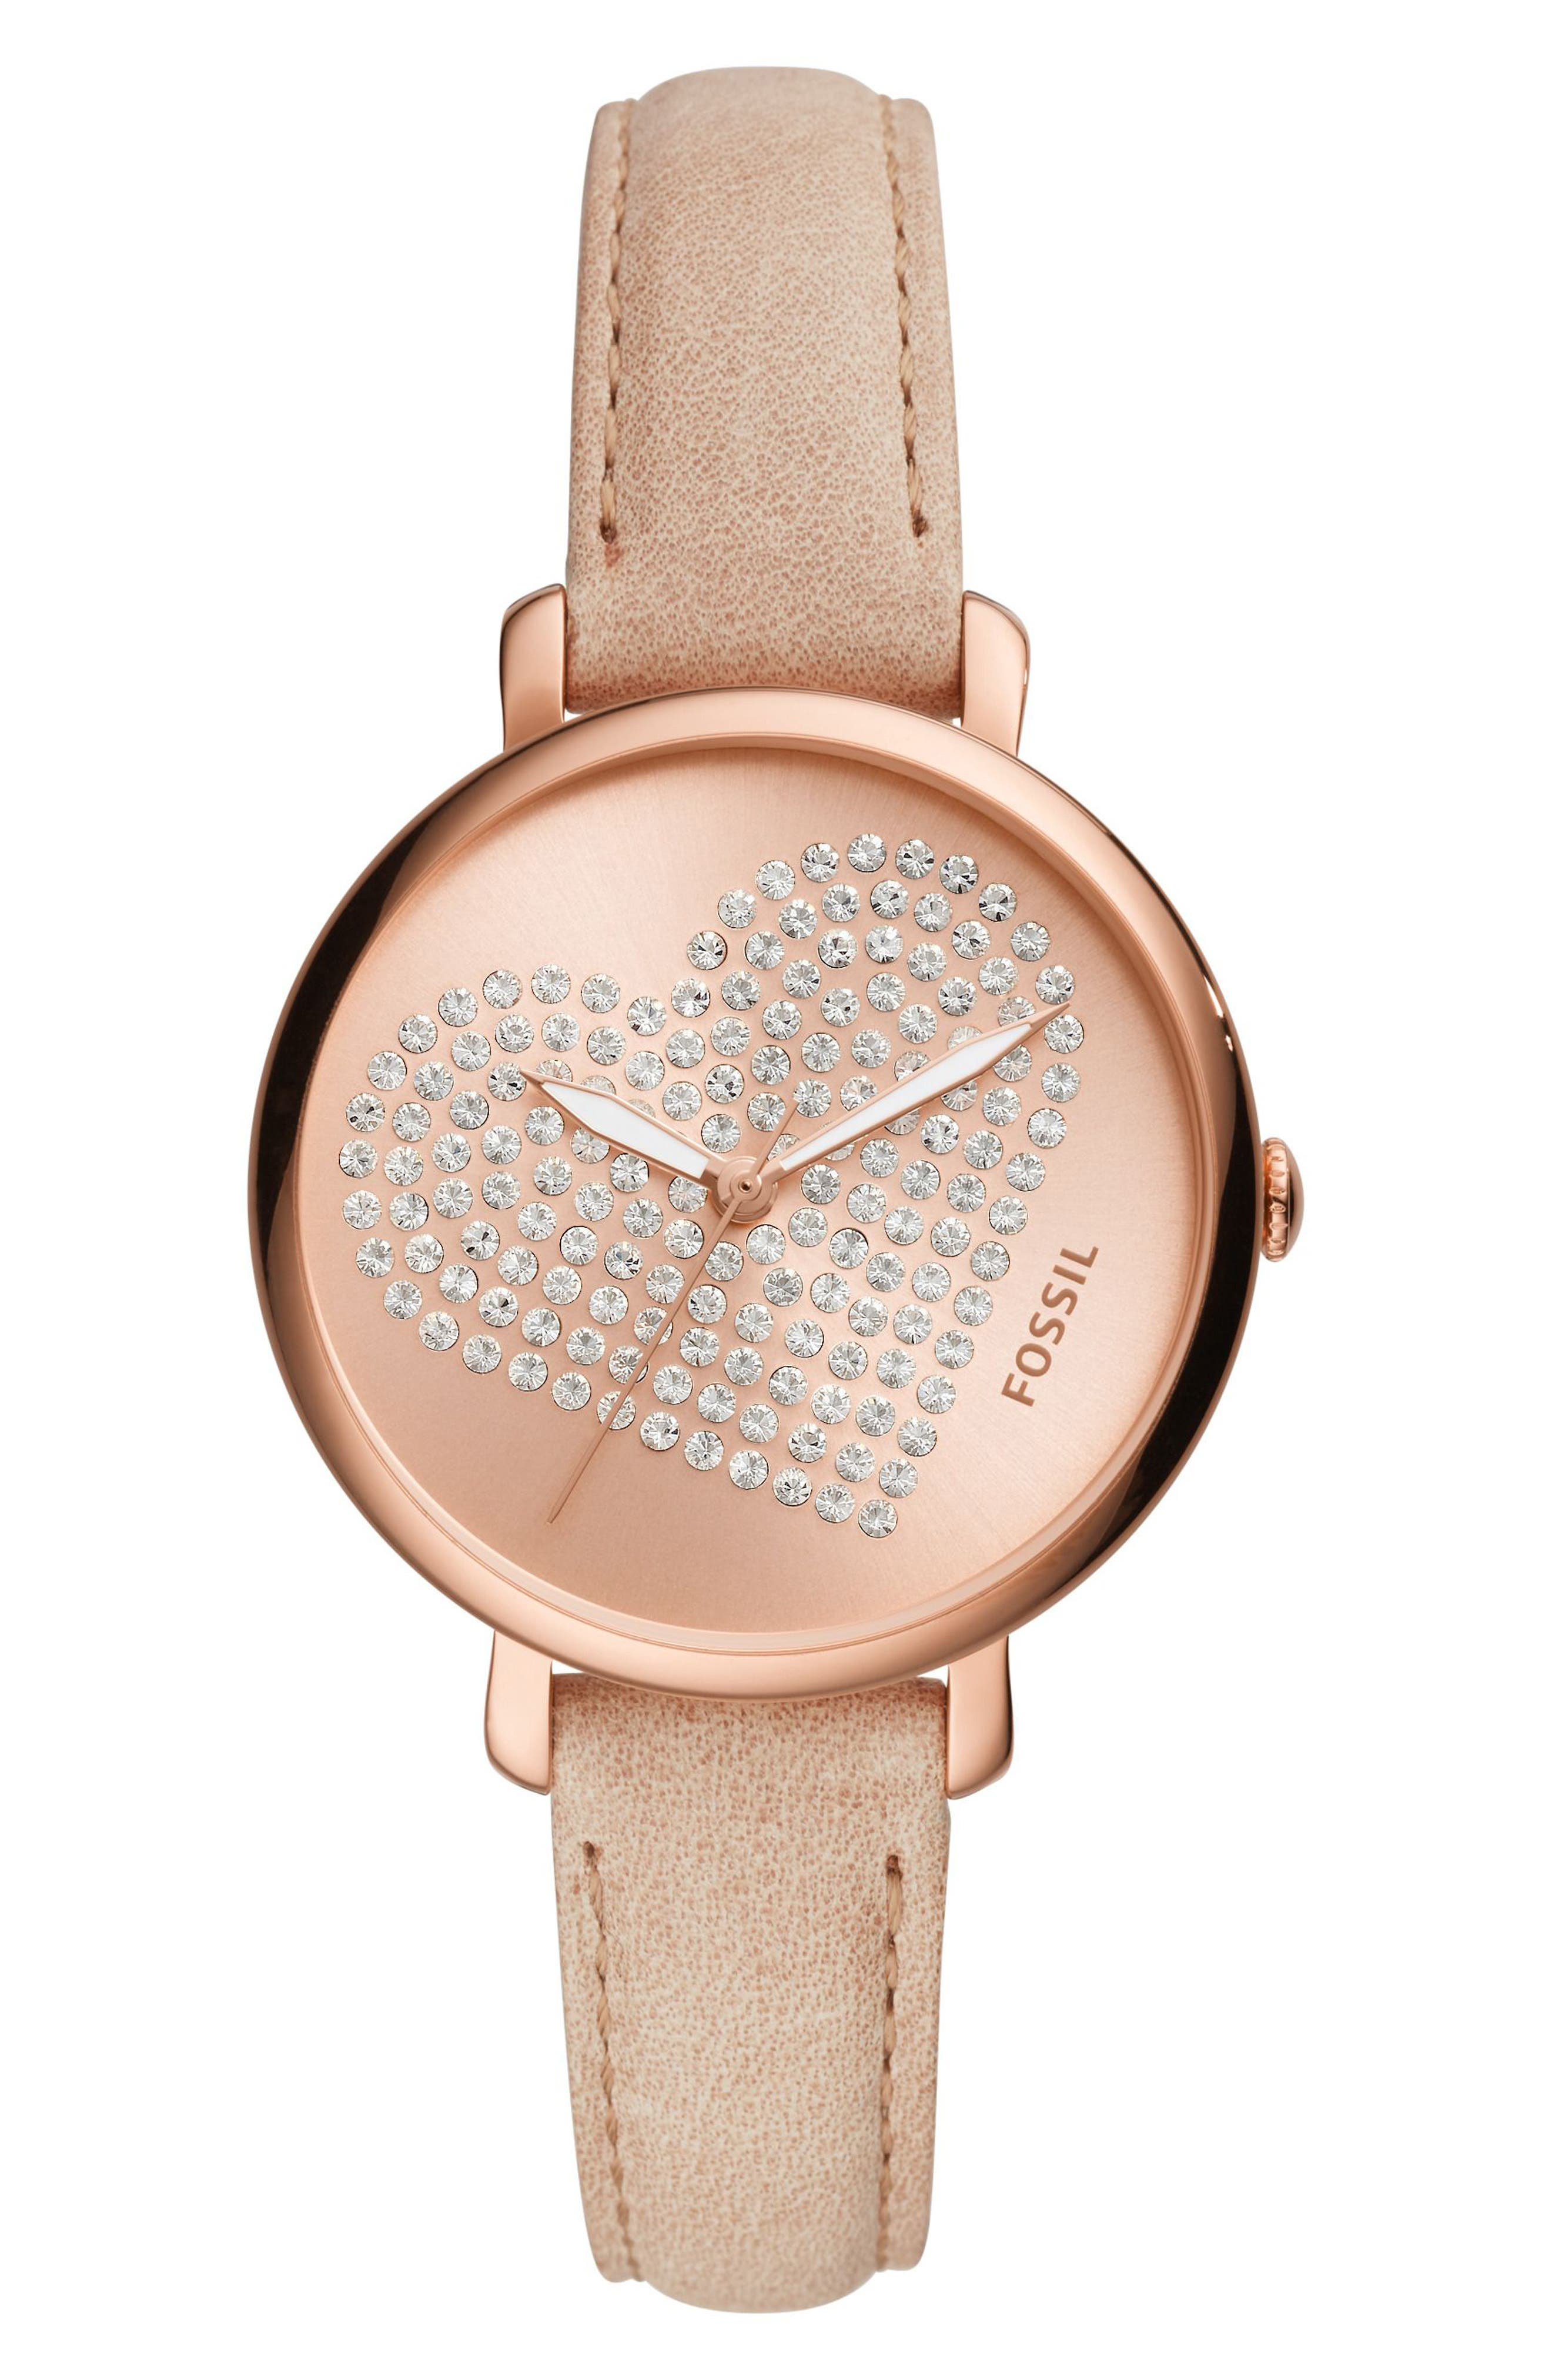 Main Image - Fossil Jacqueline Crystal Heart Leather Strap Watch, 36mm